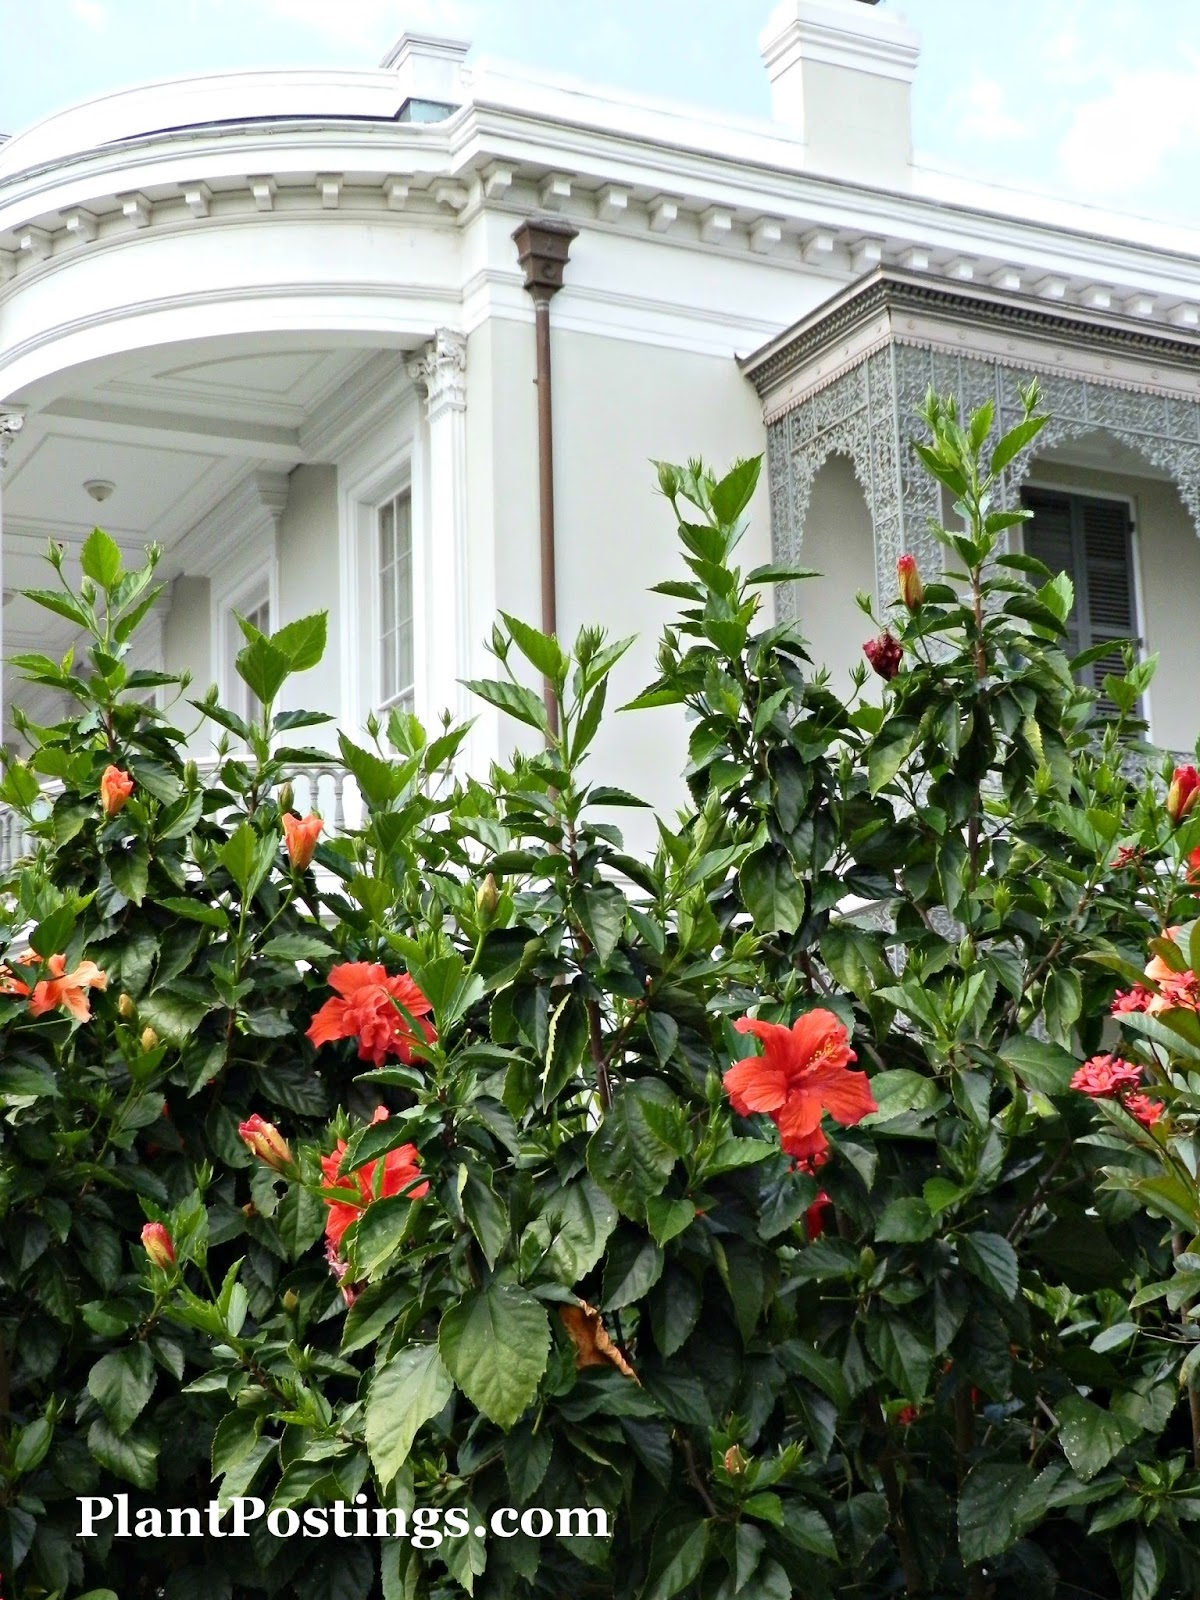 PlantPostings: Plant of the month: Hibiscus